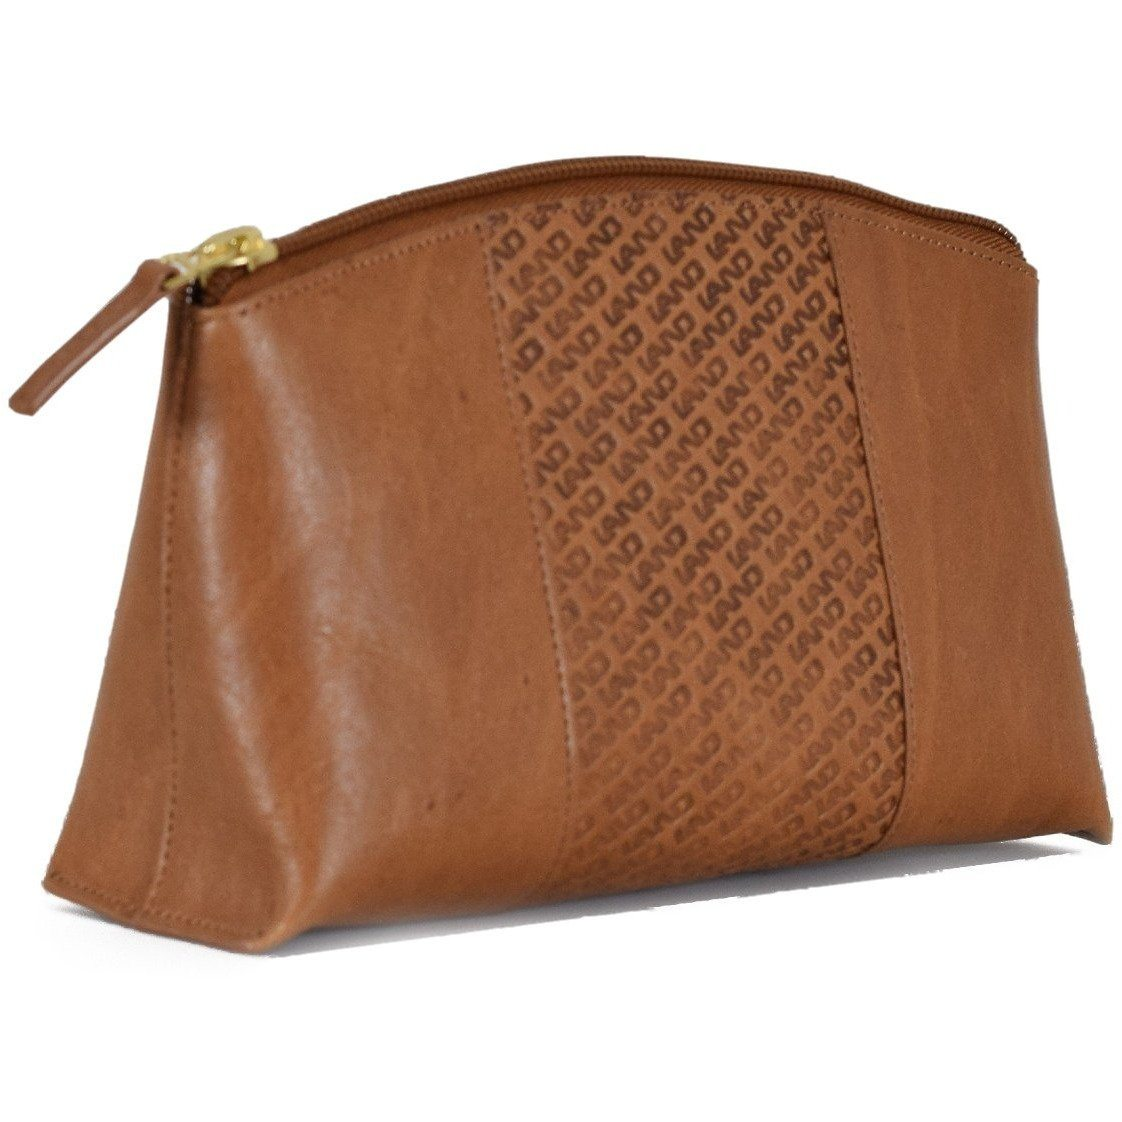 Limited Cosmetic Pouch With Mirror, Cosmetic Pouch | LAND Leather